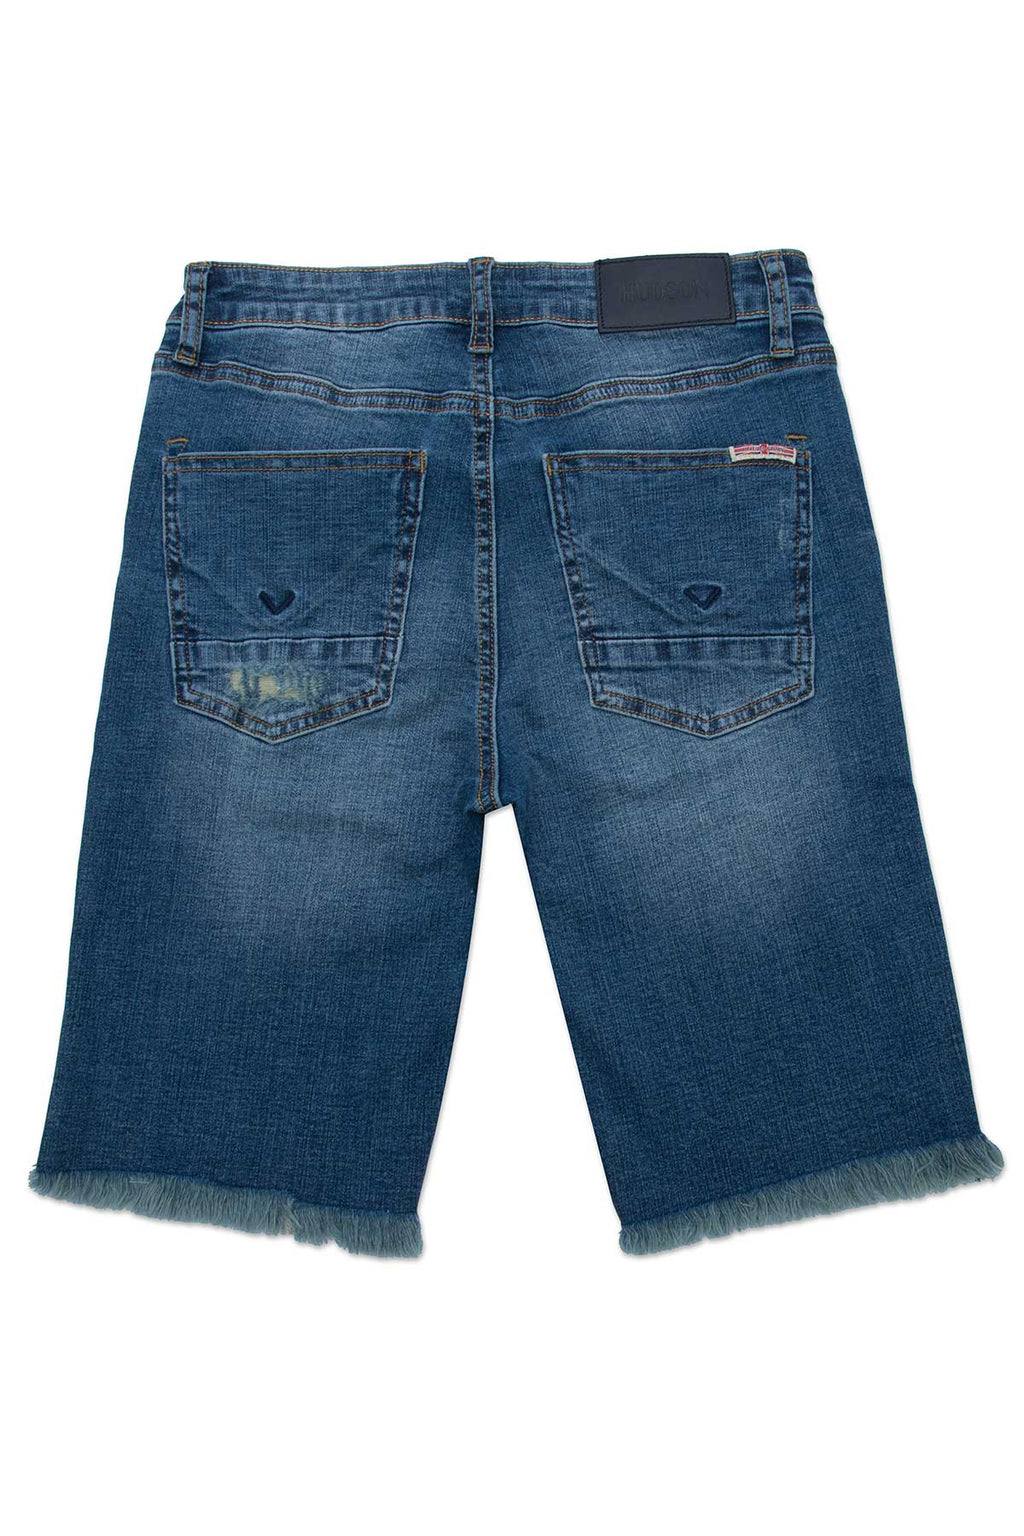 BIG BOYS REPAIRED SHORT, SIZES 8-18 - HEAVY DESTROYED - Image 2